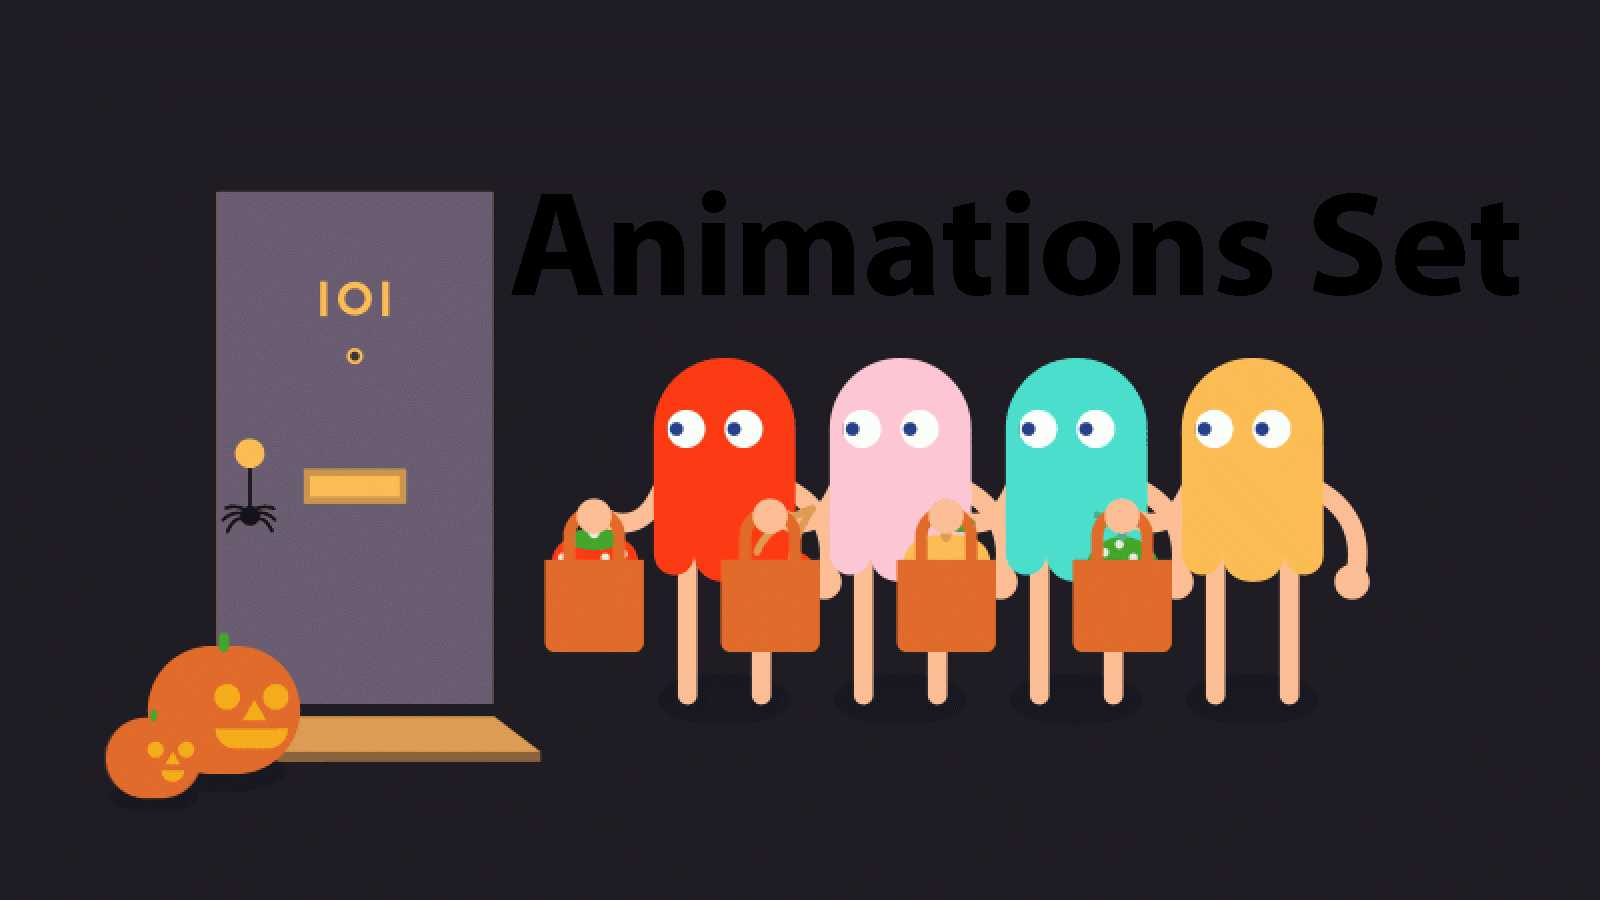 VRCMods - Animation Set (102 total animations + Tutorial In